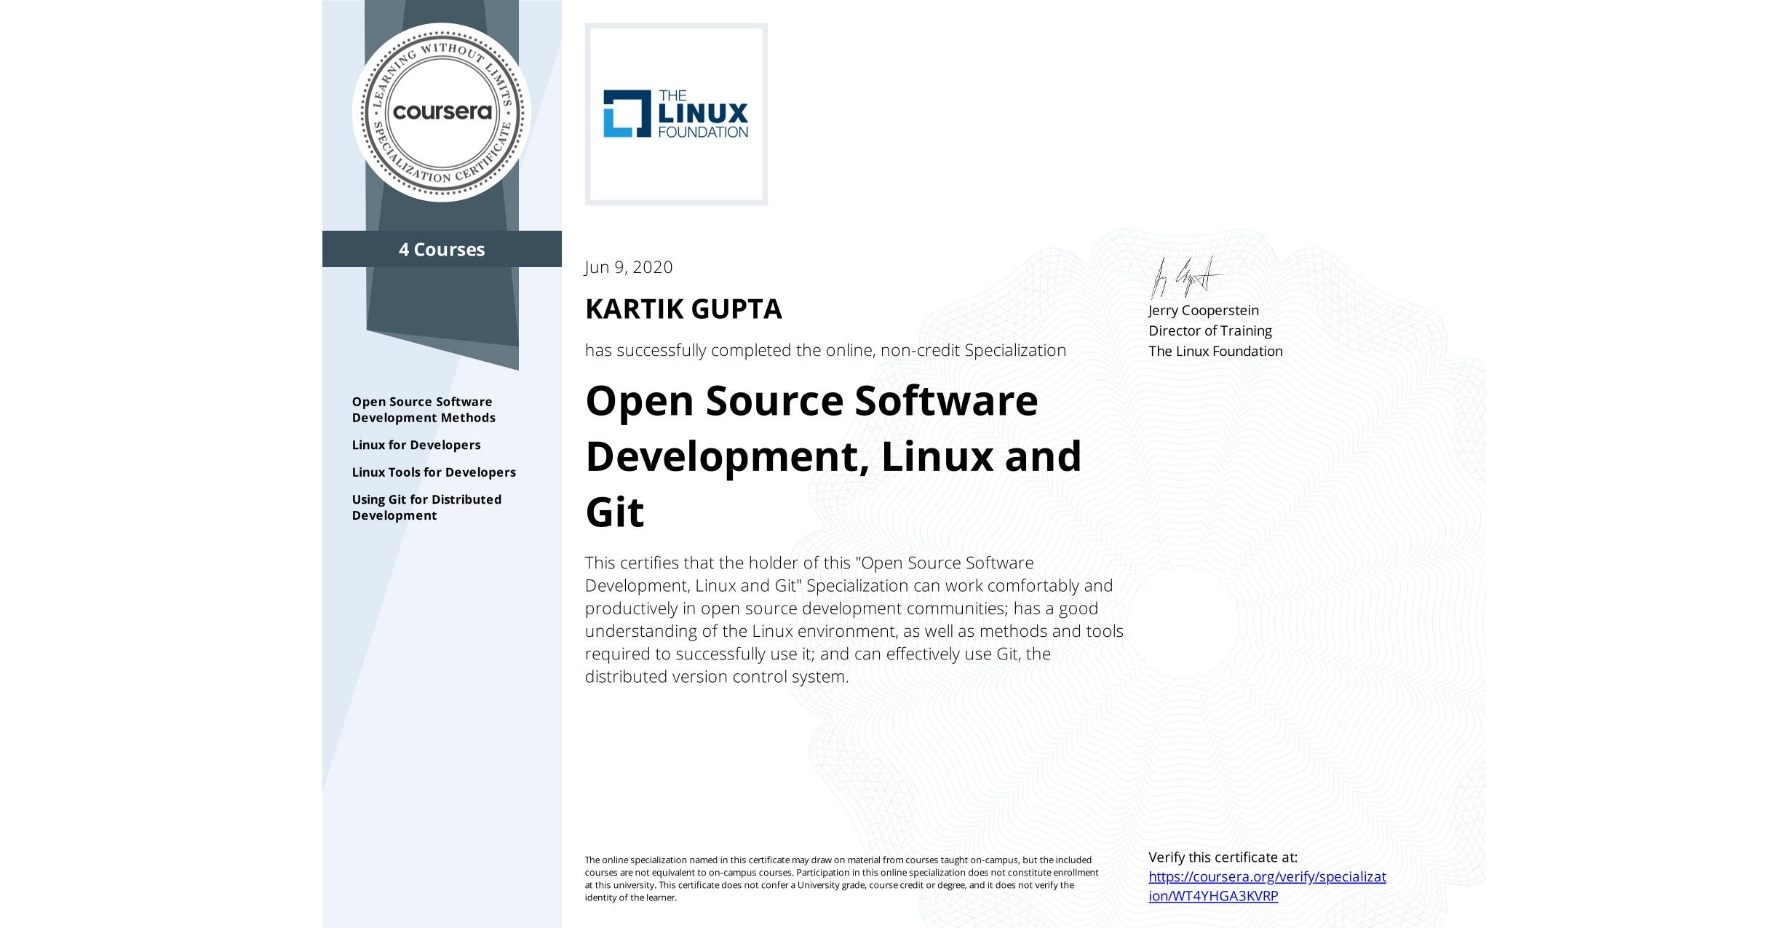 """View certificate for KARTIK GUPTA, Open Source Software Development, Linux and Git, offered through Coursera. This certifies that the holder of this """"Open Source Software Development, Linux and Git"""" Specialization can work comfortably and productively in open source development communities; has a good understanding of the Linux environment, as well as methods and tools required to successfully use it; and can effectively use Git, the distributed version control system."""